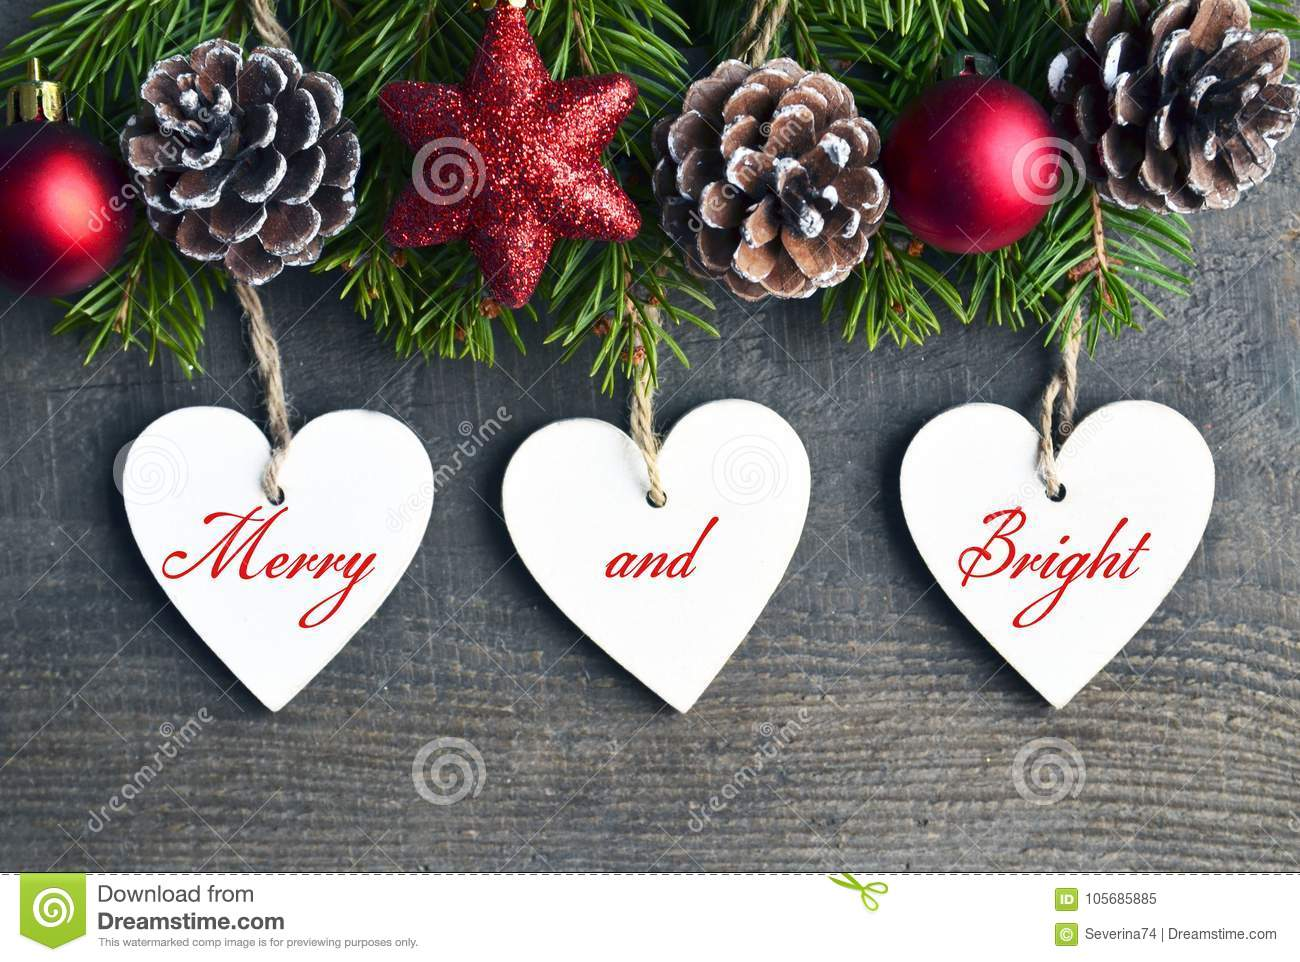 merry and brightchristmas decoration with fir treepine cones and white wooden - Merry And Bright Christmas Decorations